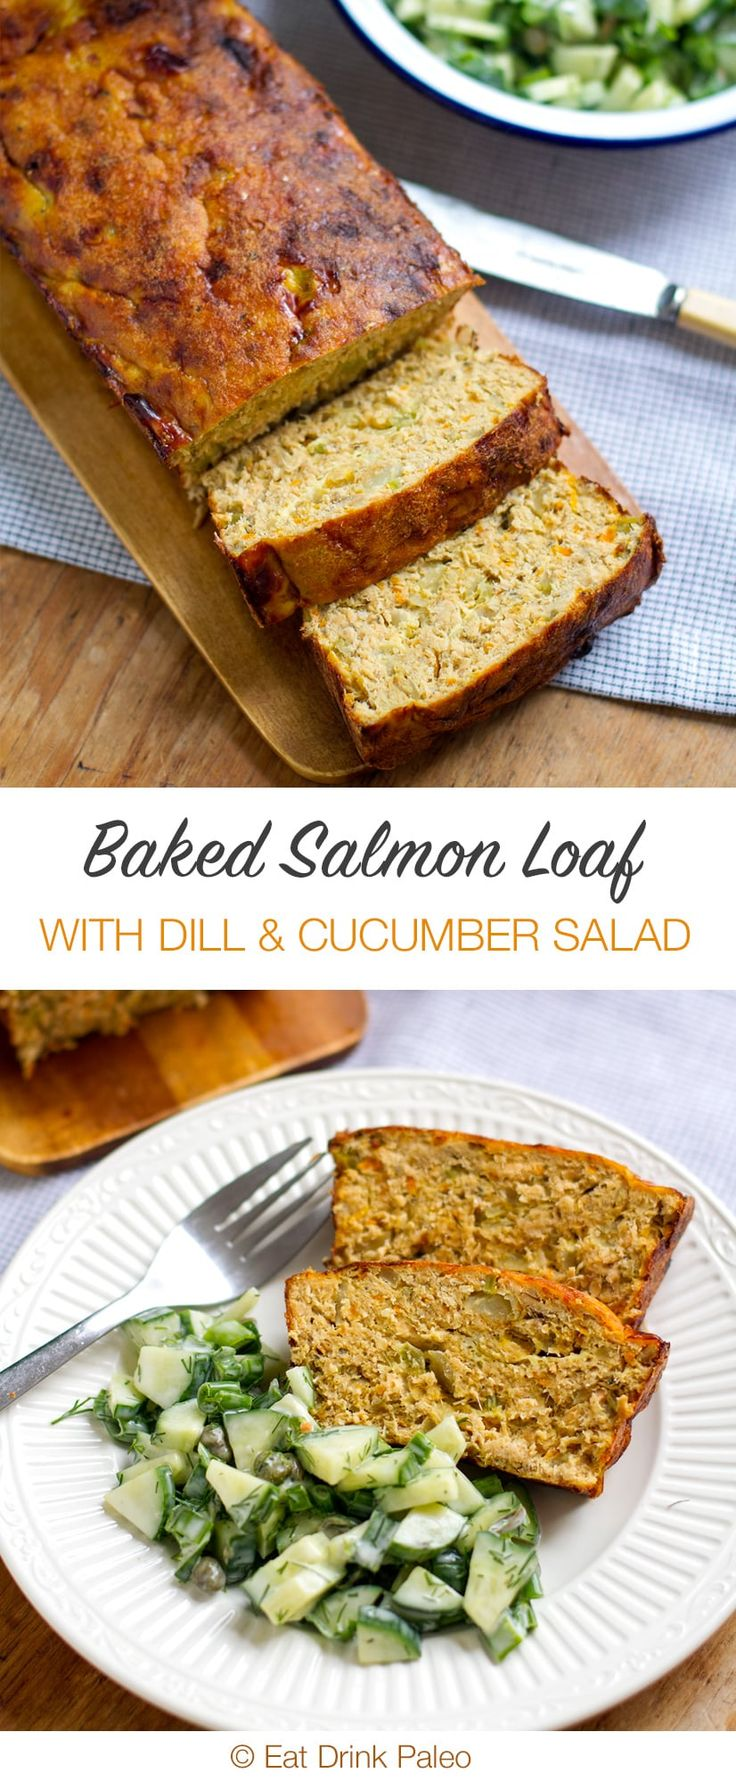 Baked Salmon Loaf With Dill and Cucumber Salad - this loaf is made with canned salmon and lovely sautéed onions, celery and carrots. It's paleo, gluten free, grain free and budget friendly. http://eatdrinkpaleo.com.au/baked-salmon-loaf-recipe-paleo-gluten-free/